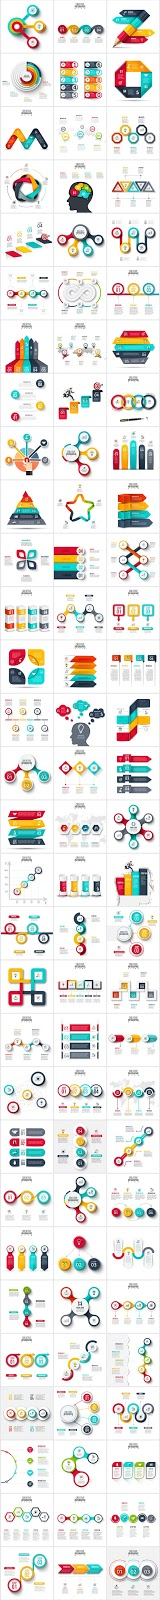 Download Infographic 2000 Accessories Bag, design, size of 3.5 GB